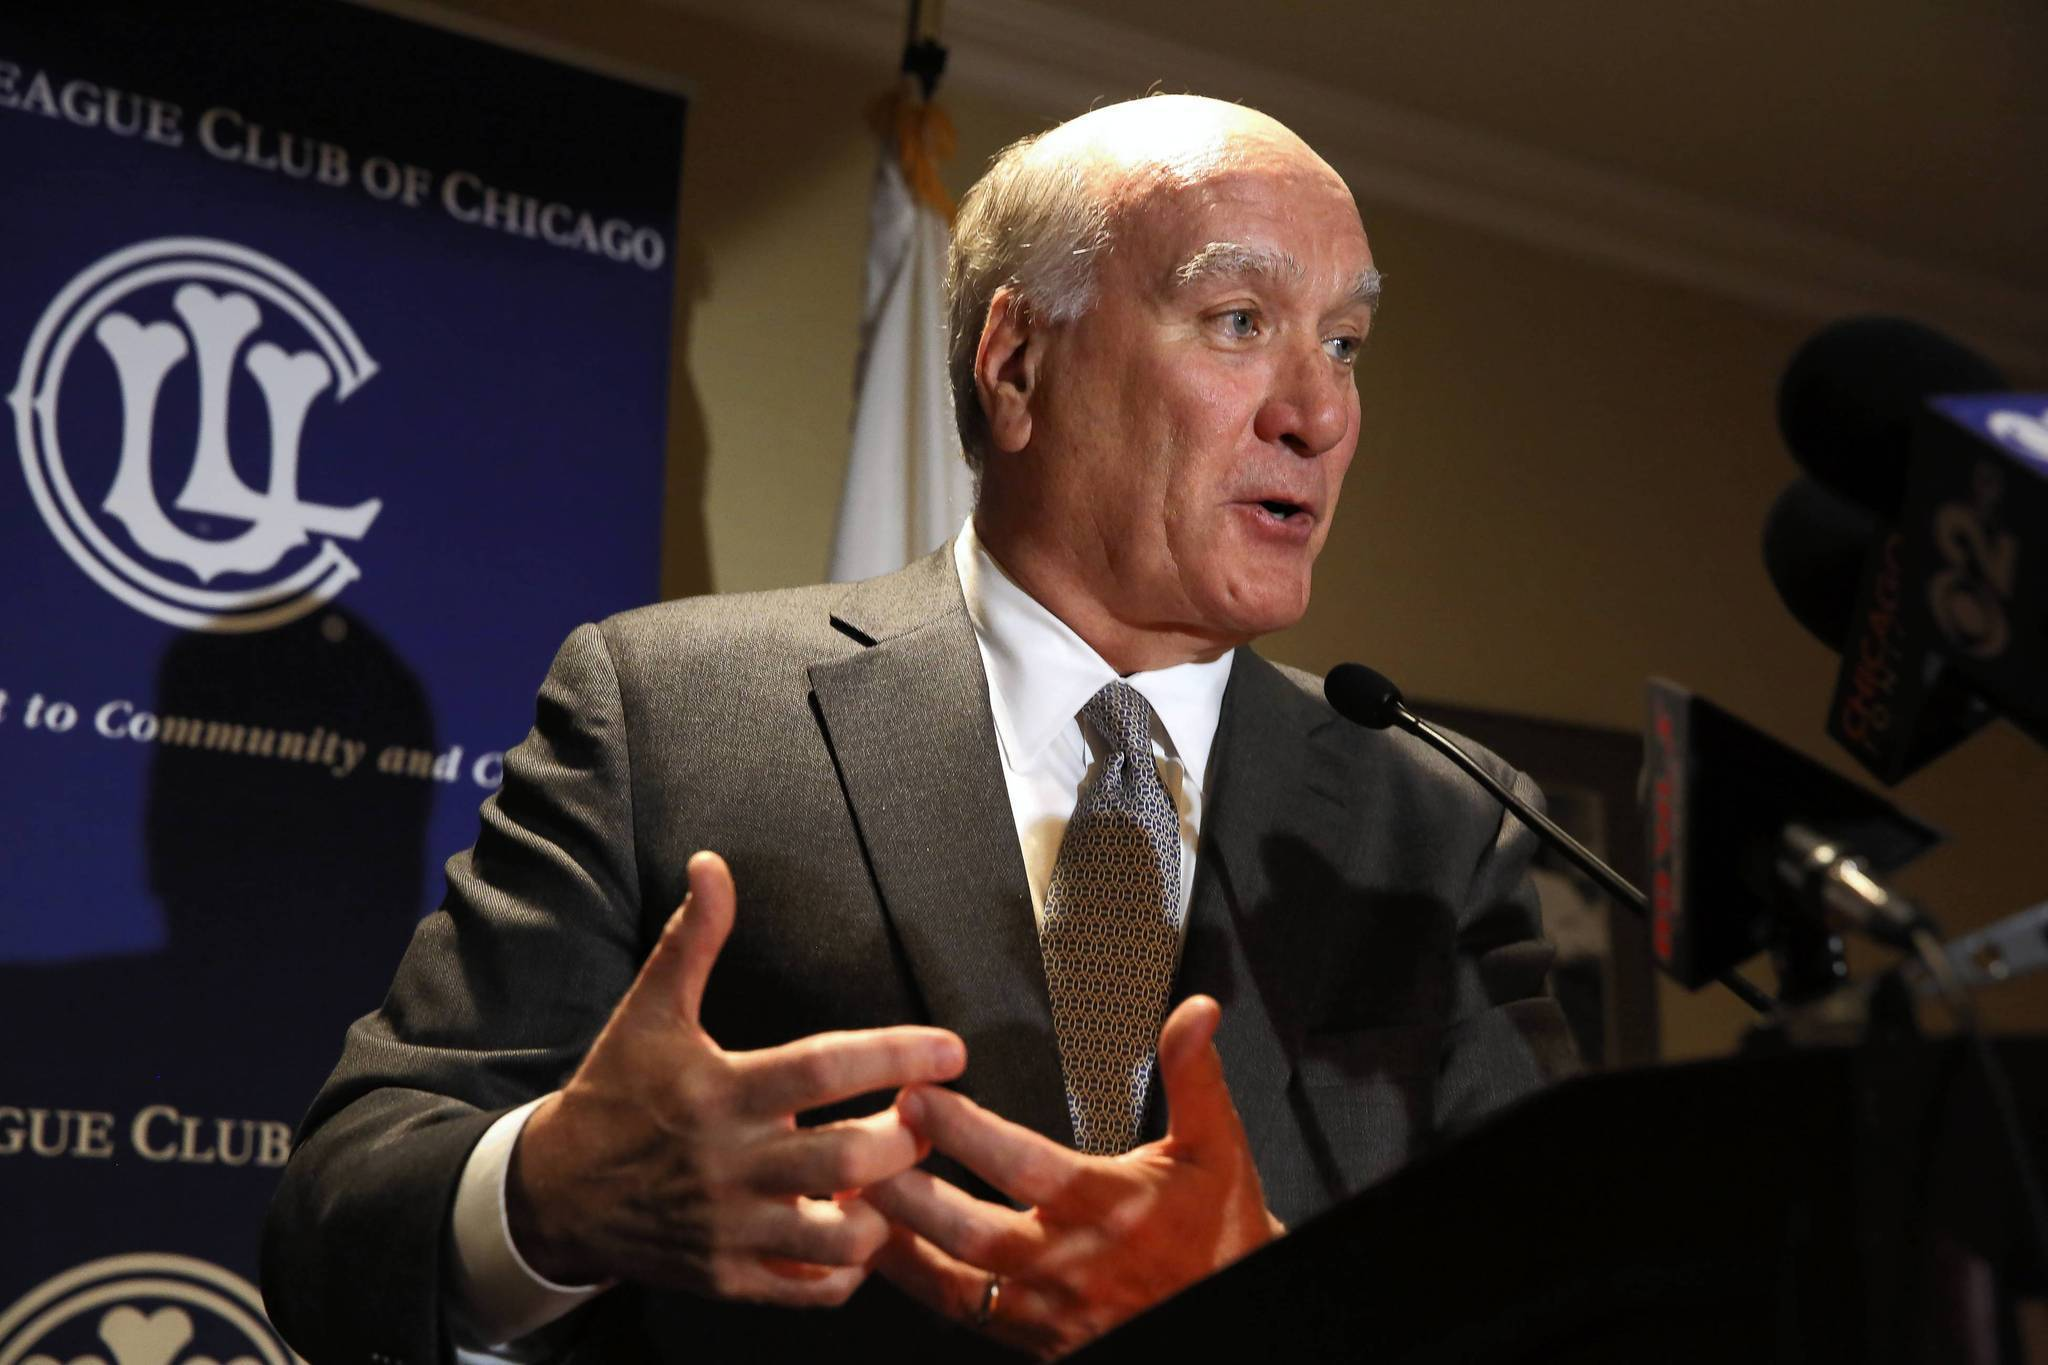 Bill Daley, former Illinois Democratic candidate for governor and White House chief of staff.